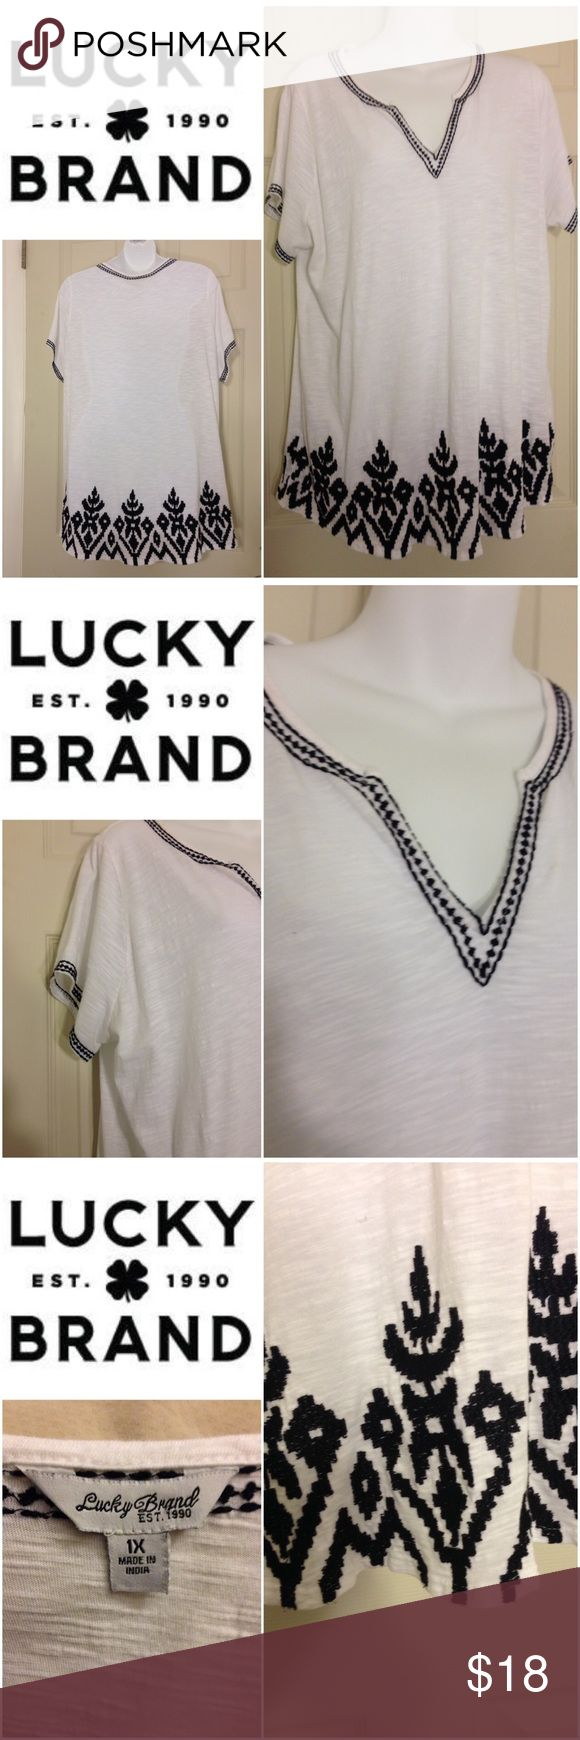 🌴NEW  LISTING🌴 Lucky 🍀 Brand Shirt White and black. Embroidery. 100% cotton. Size 1X. (2/4) Lucky Brand Tops